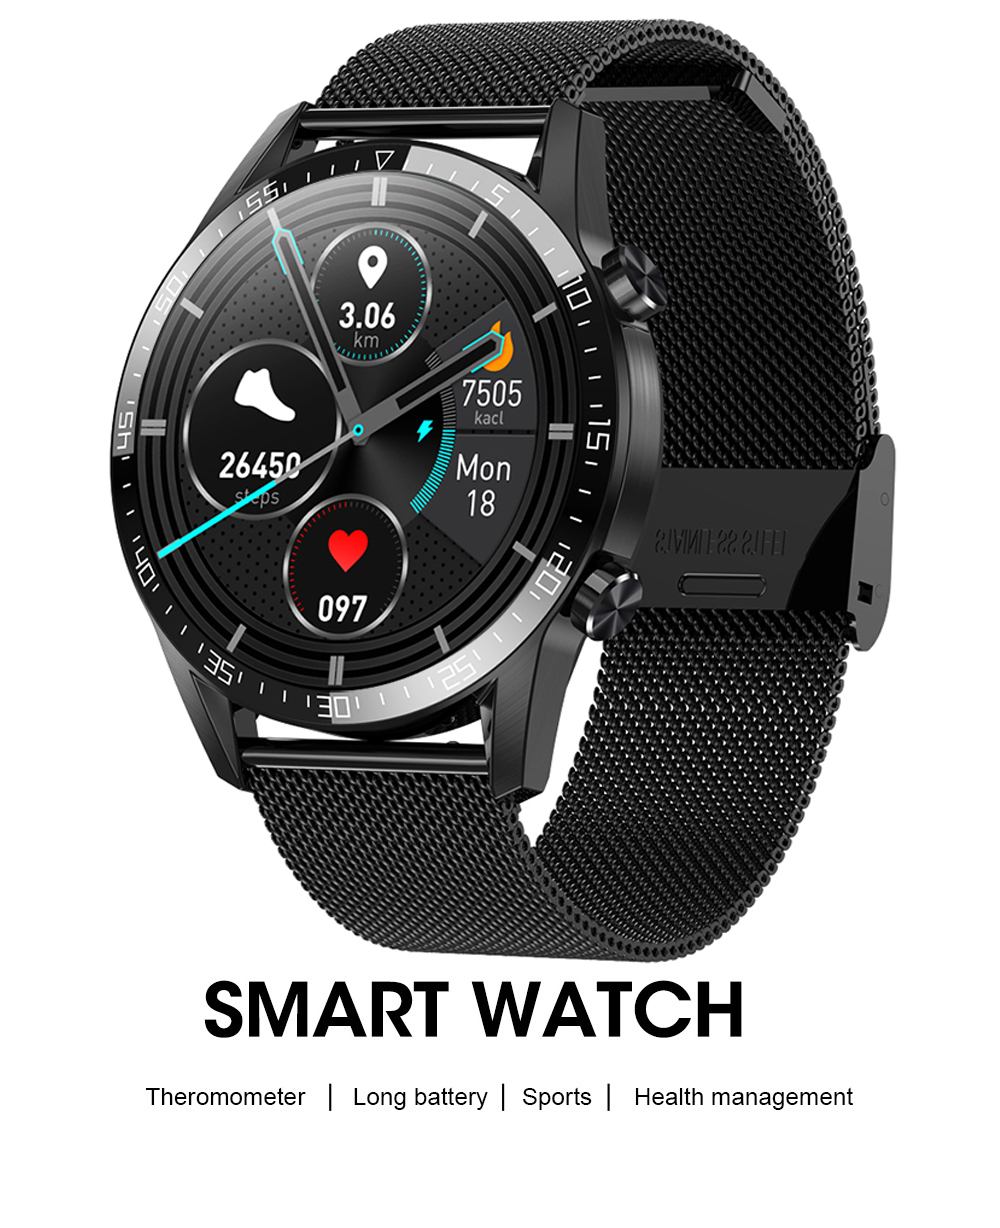 H682384236b474afcb279807c91d7b271H Timewolf IP68 Smart Watch Men Android 2020 Full Touch Smartwatch Men Women Smart Watch For Huawei Xiaomi Apple IOS Android Phone